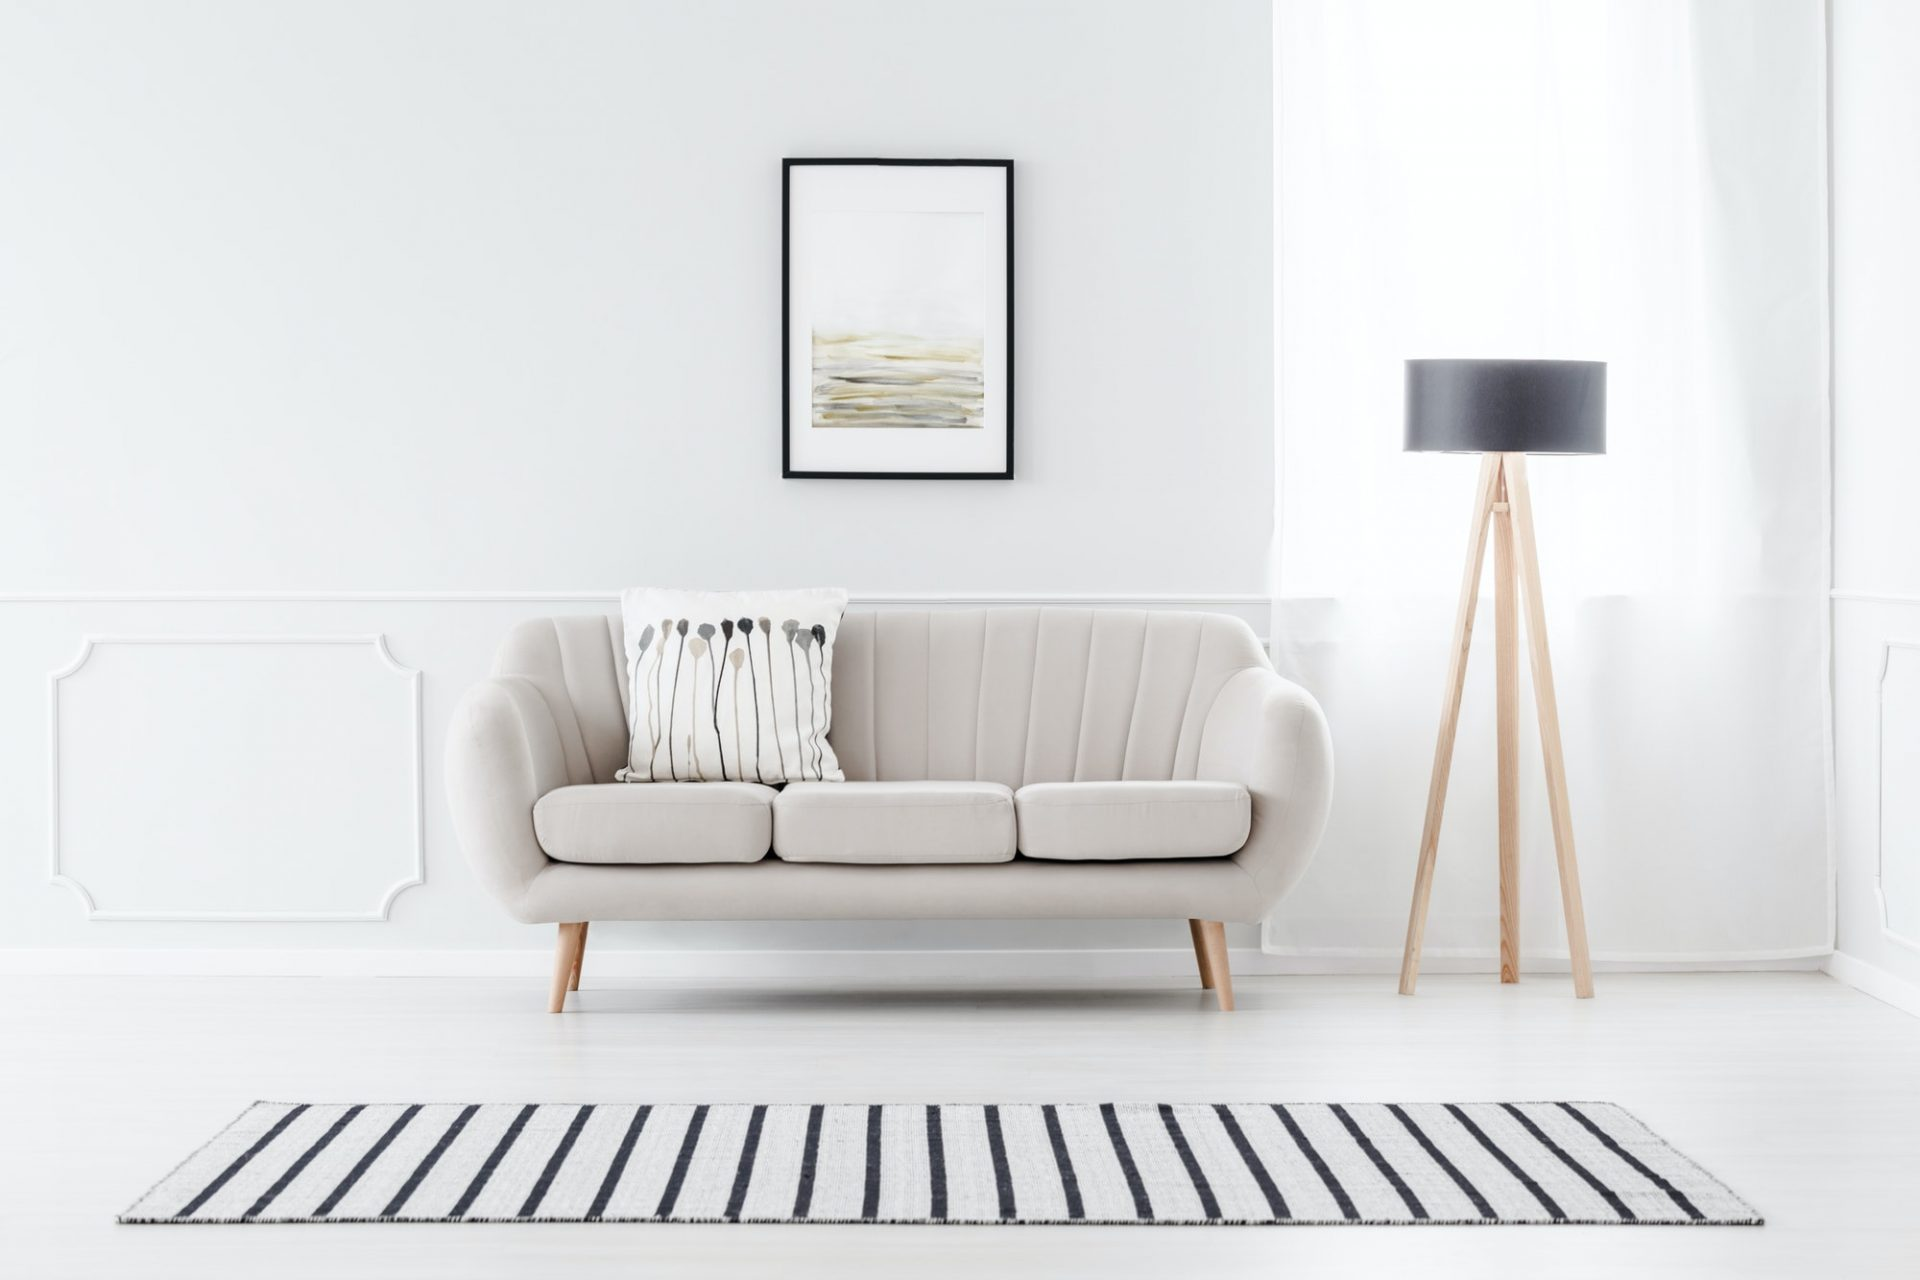 Couch Against Wall